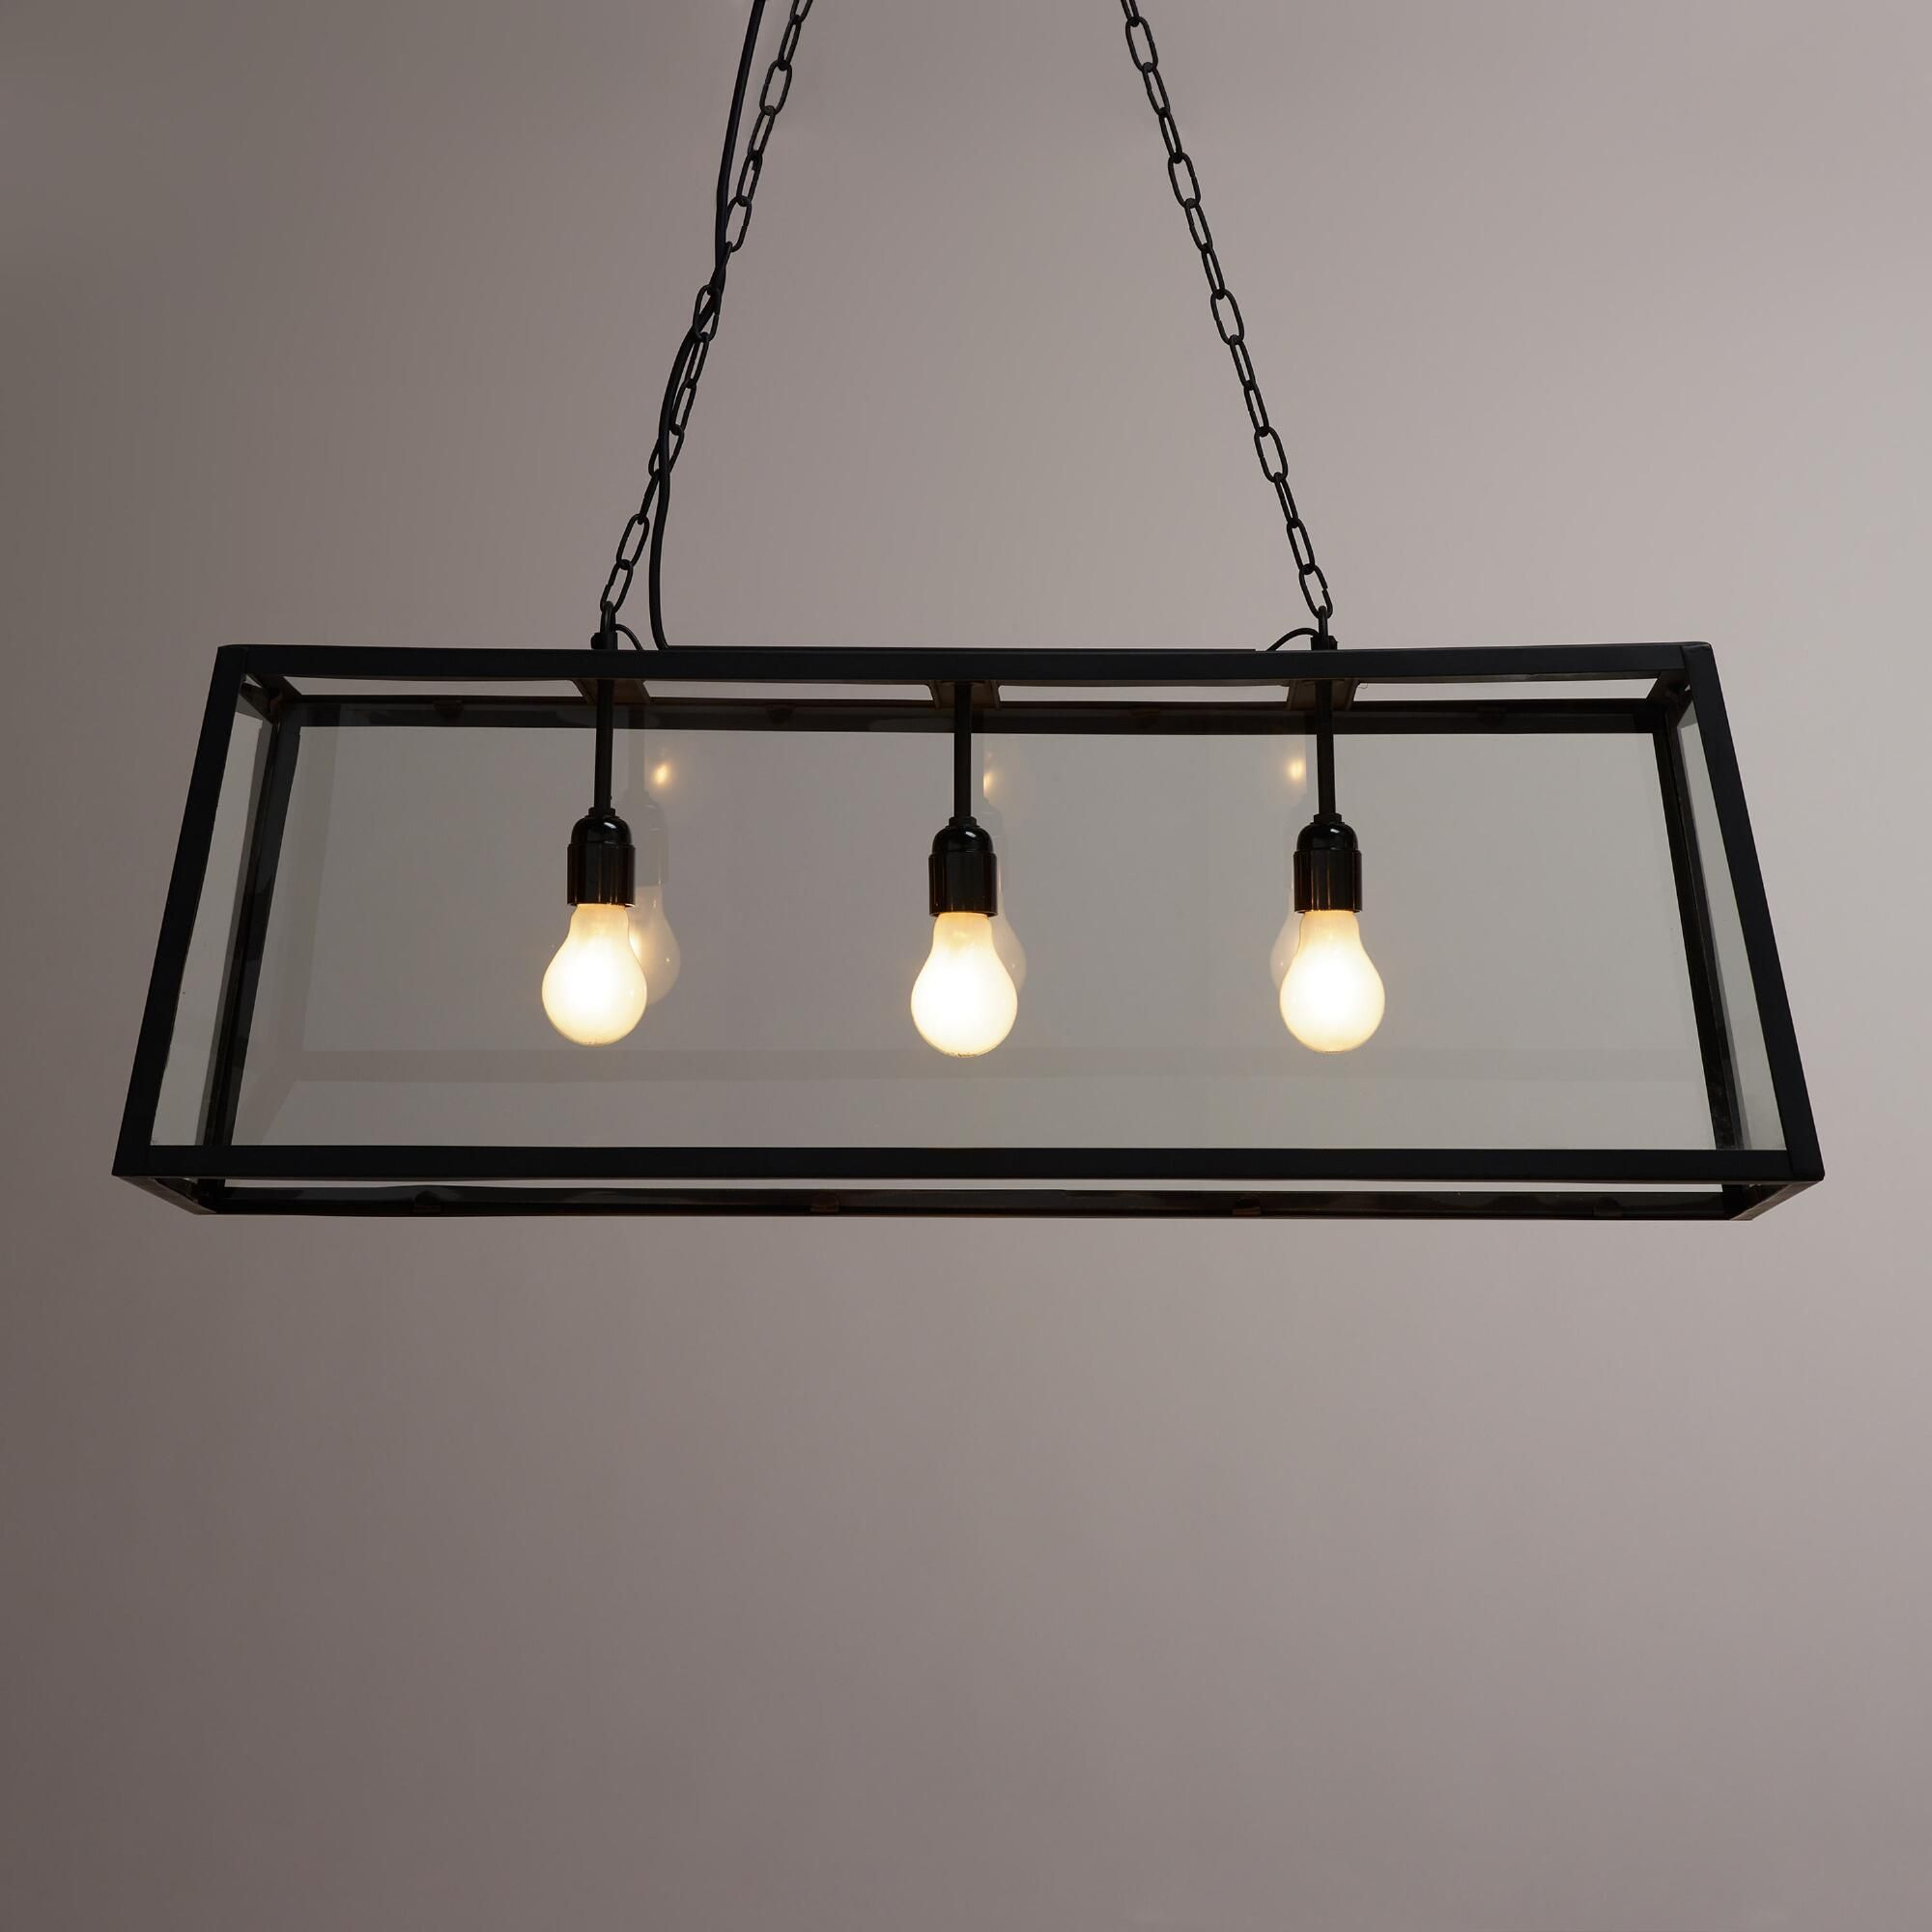 Crafted of clear glass panes set in a black iron frame our crafted of clear glass panes set in a black iron frame our exclusive pendant lamp is a dramatic three dimensional statement piece ideal for the dining mozeypictures Images